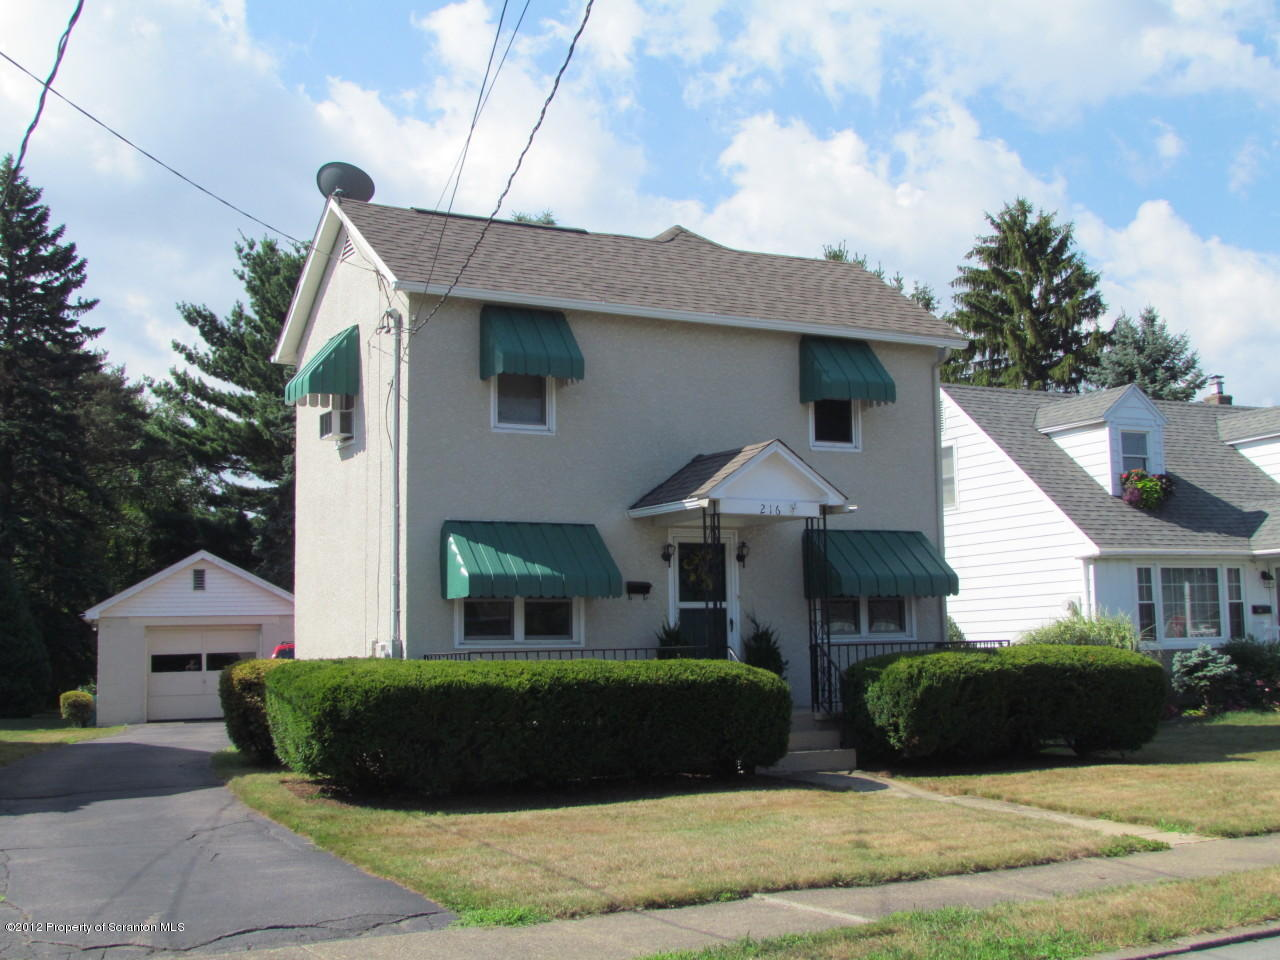 216 Hoover St, Old Forge, Pennsylvania 18518, 3 Bedrooms Bedrooms, 6 Rooms Rooms,1 BathroomBathrooms,Rental,For Lease,Hoover,19-3386